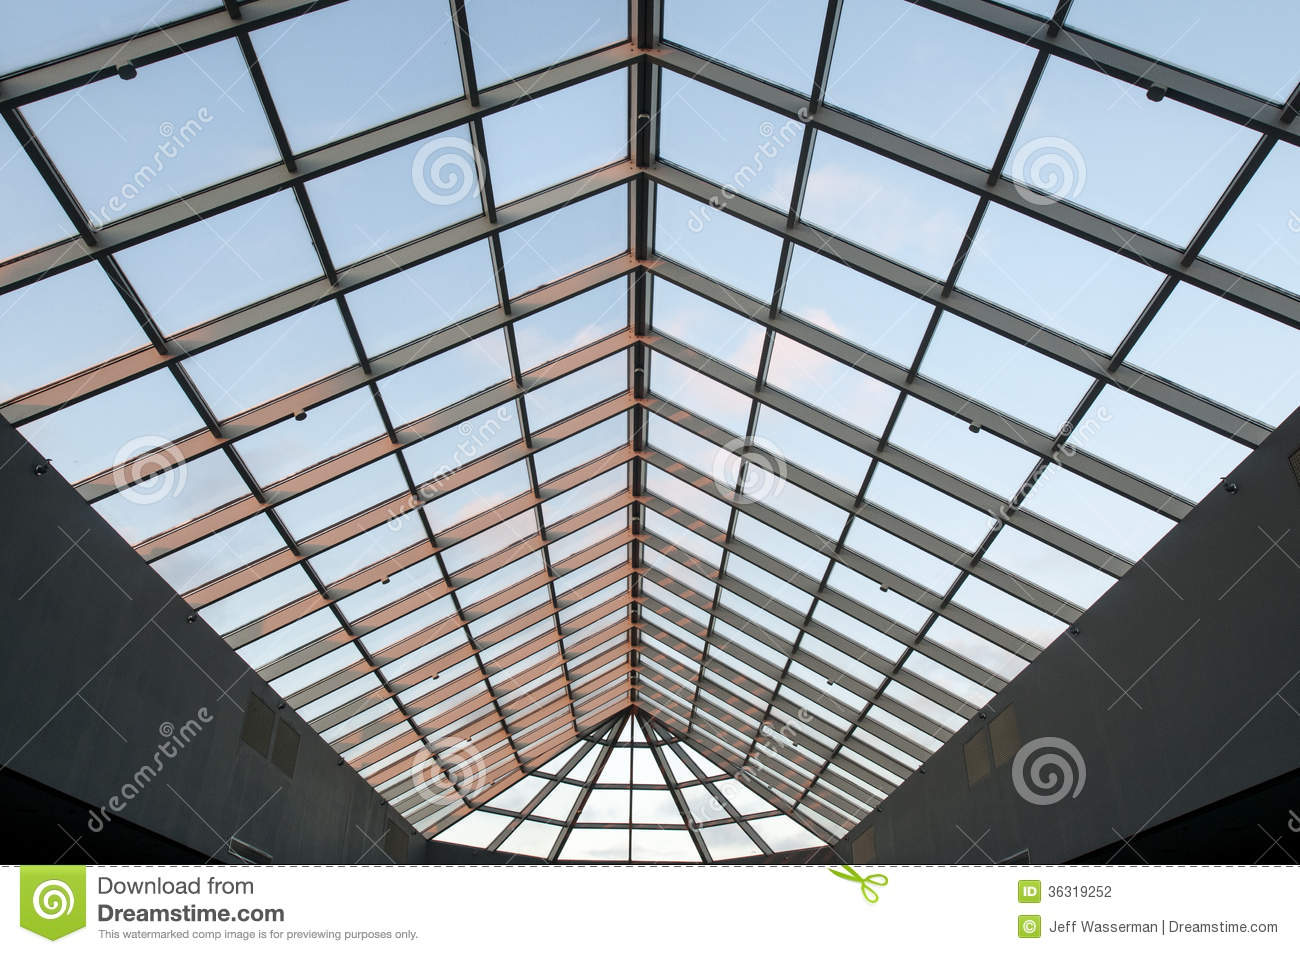 Skylight ceiling at dusk in commercial office building stock photography image 36319252 - Skylight house plans natural light ...